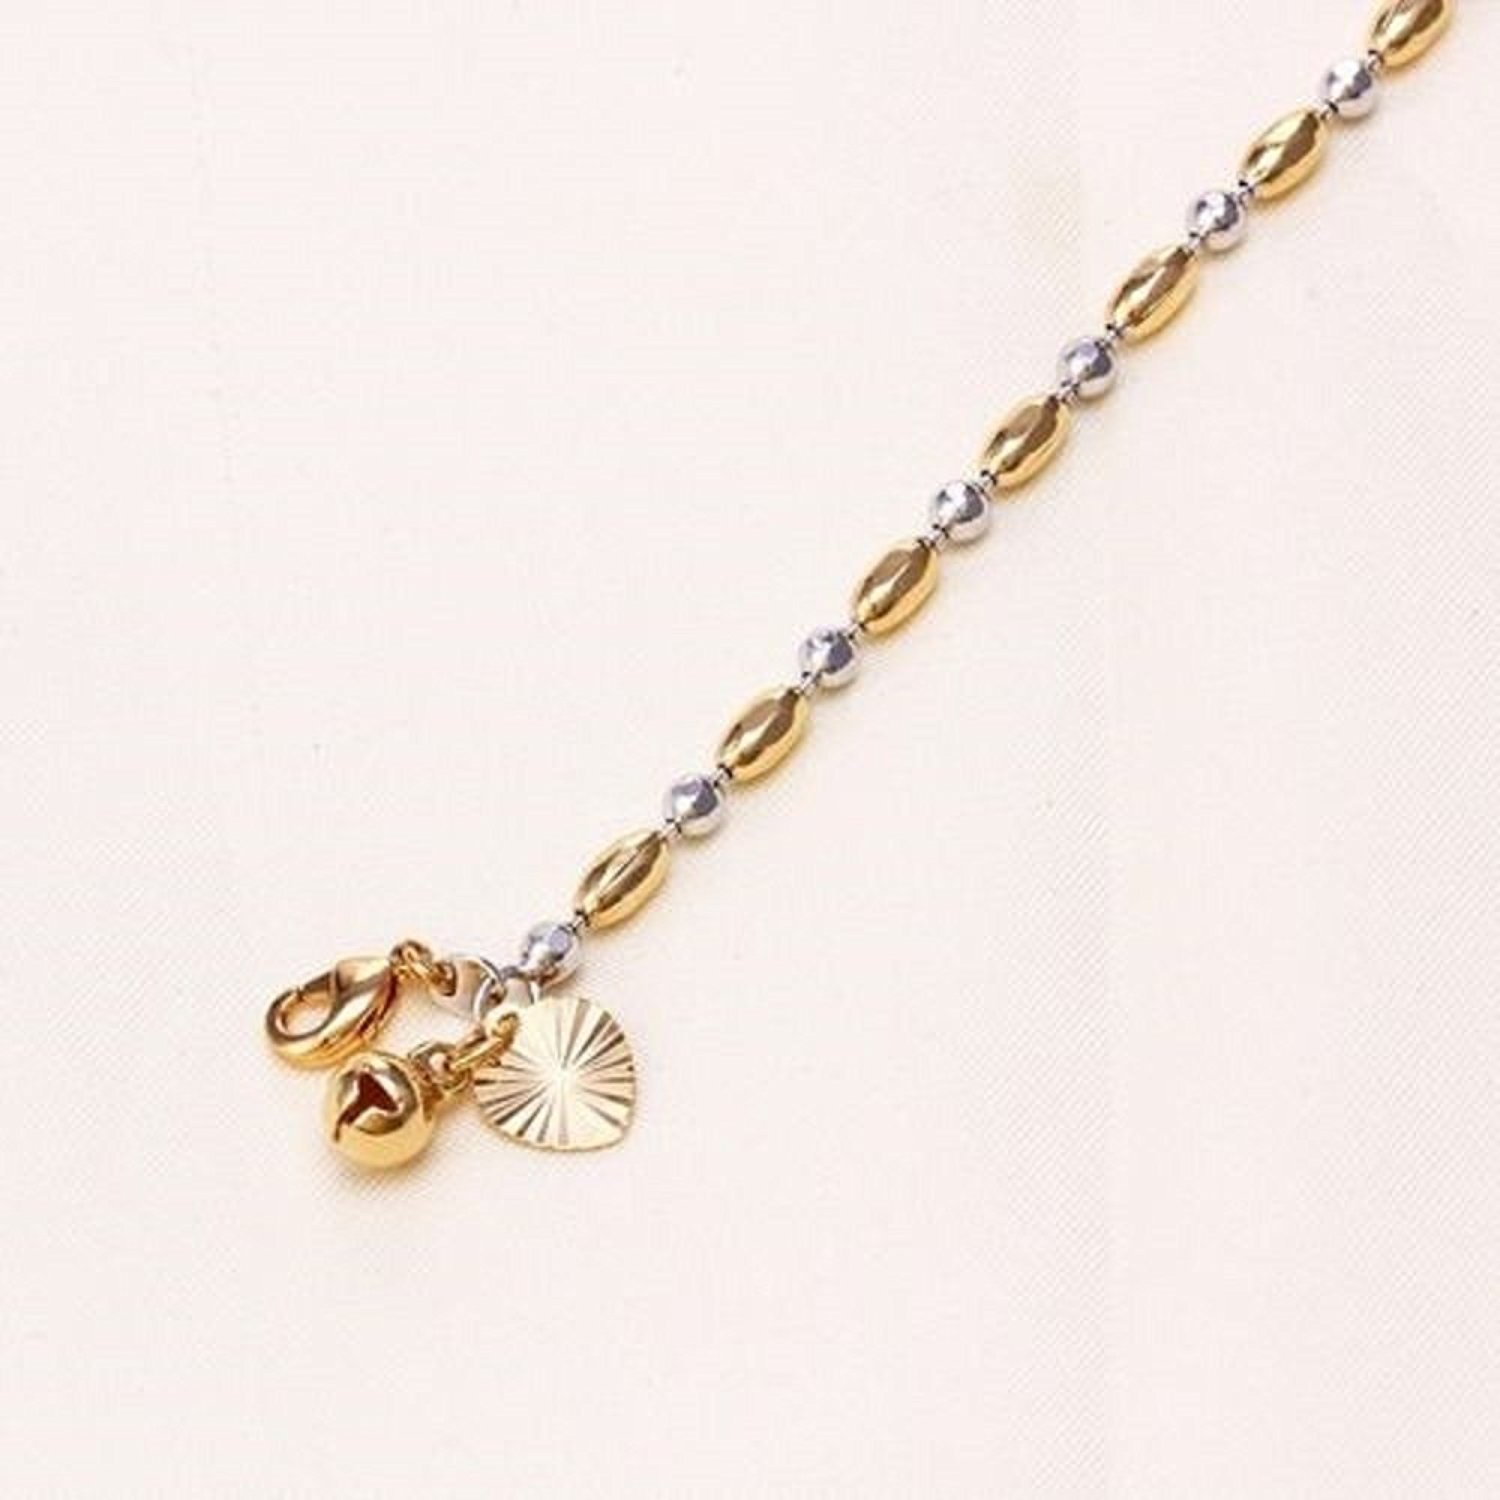 9ct 9k Yellow and White Gold Plate Ladies Girls Beaded ANKLE CHAIN,Heart & Bell ANKLET 10.6' Gift